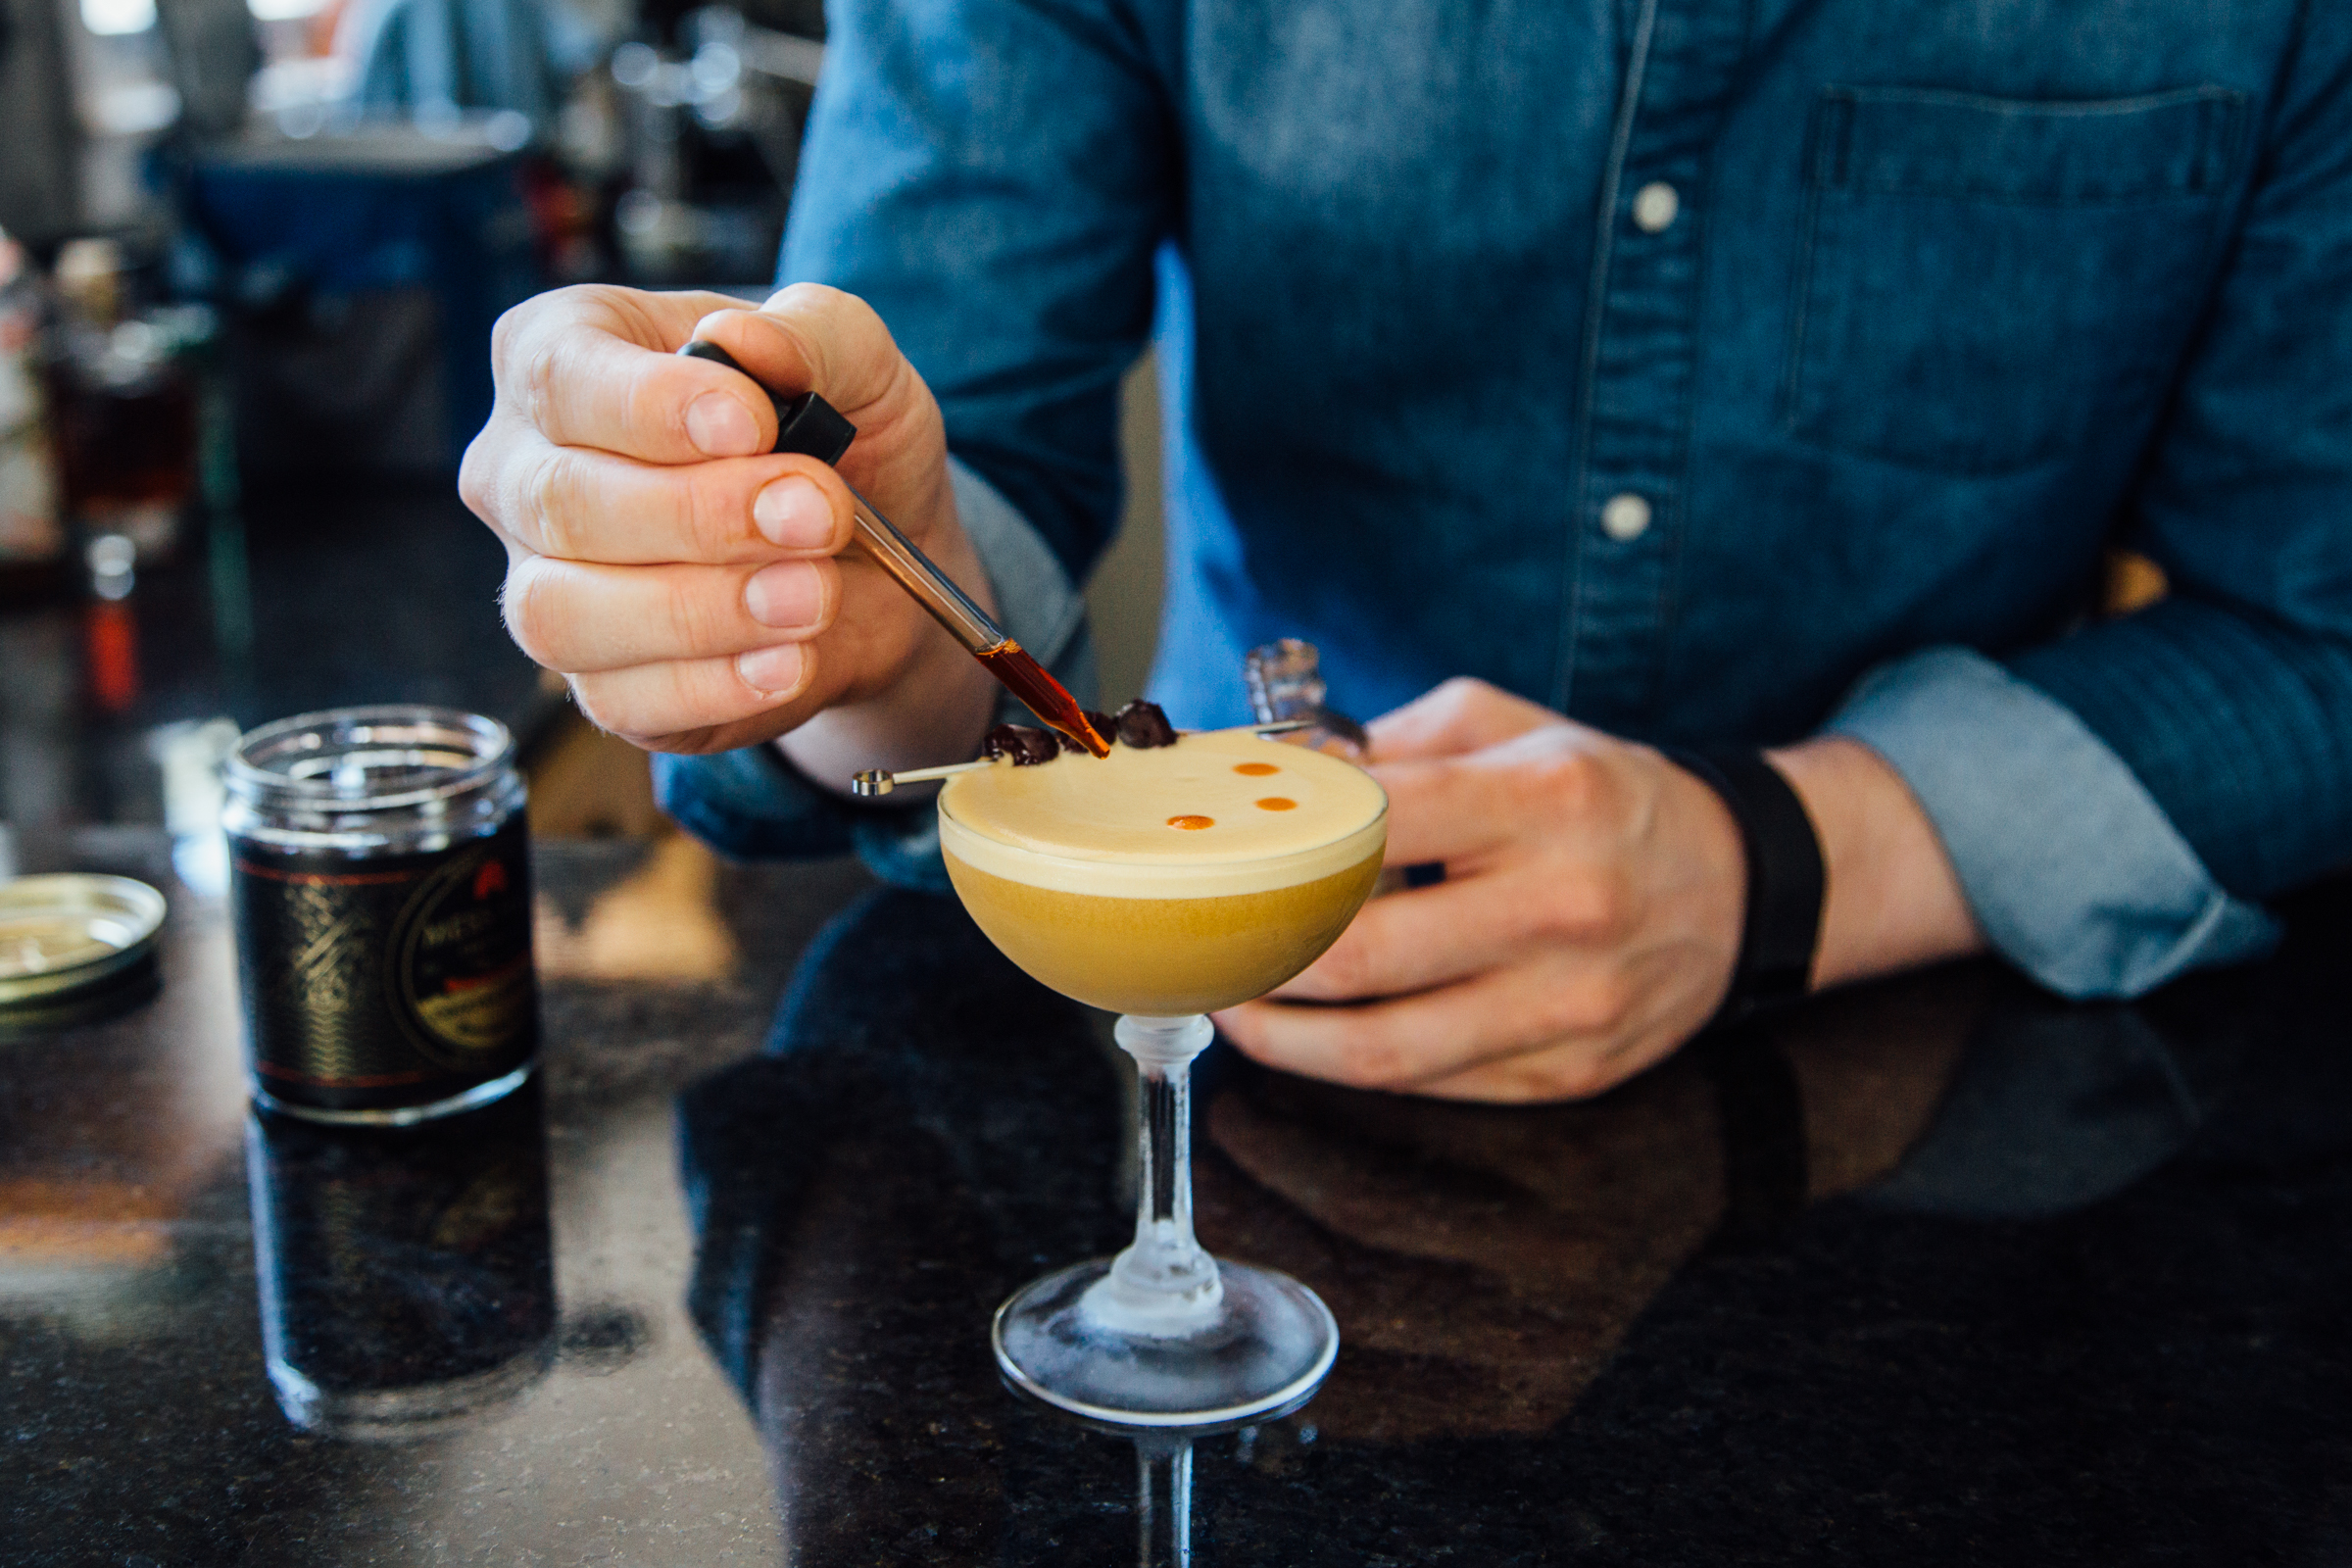 Garnishing the whisky sour